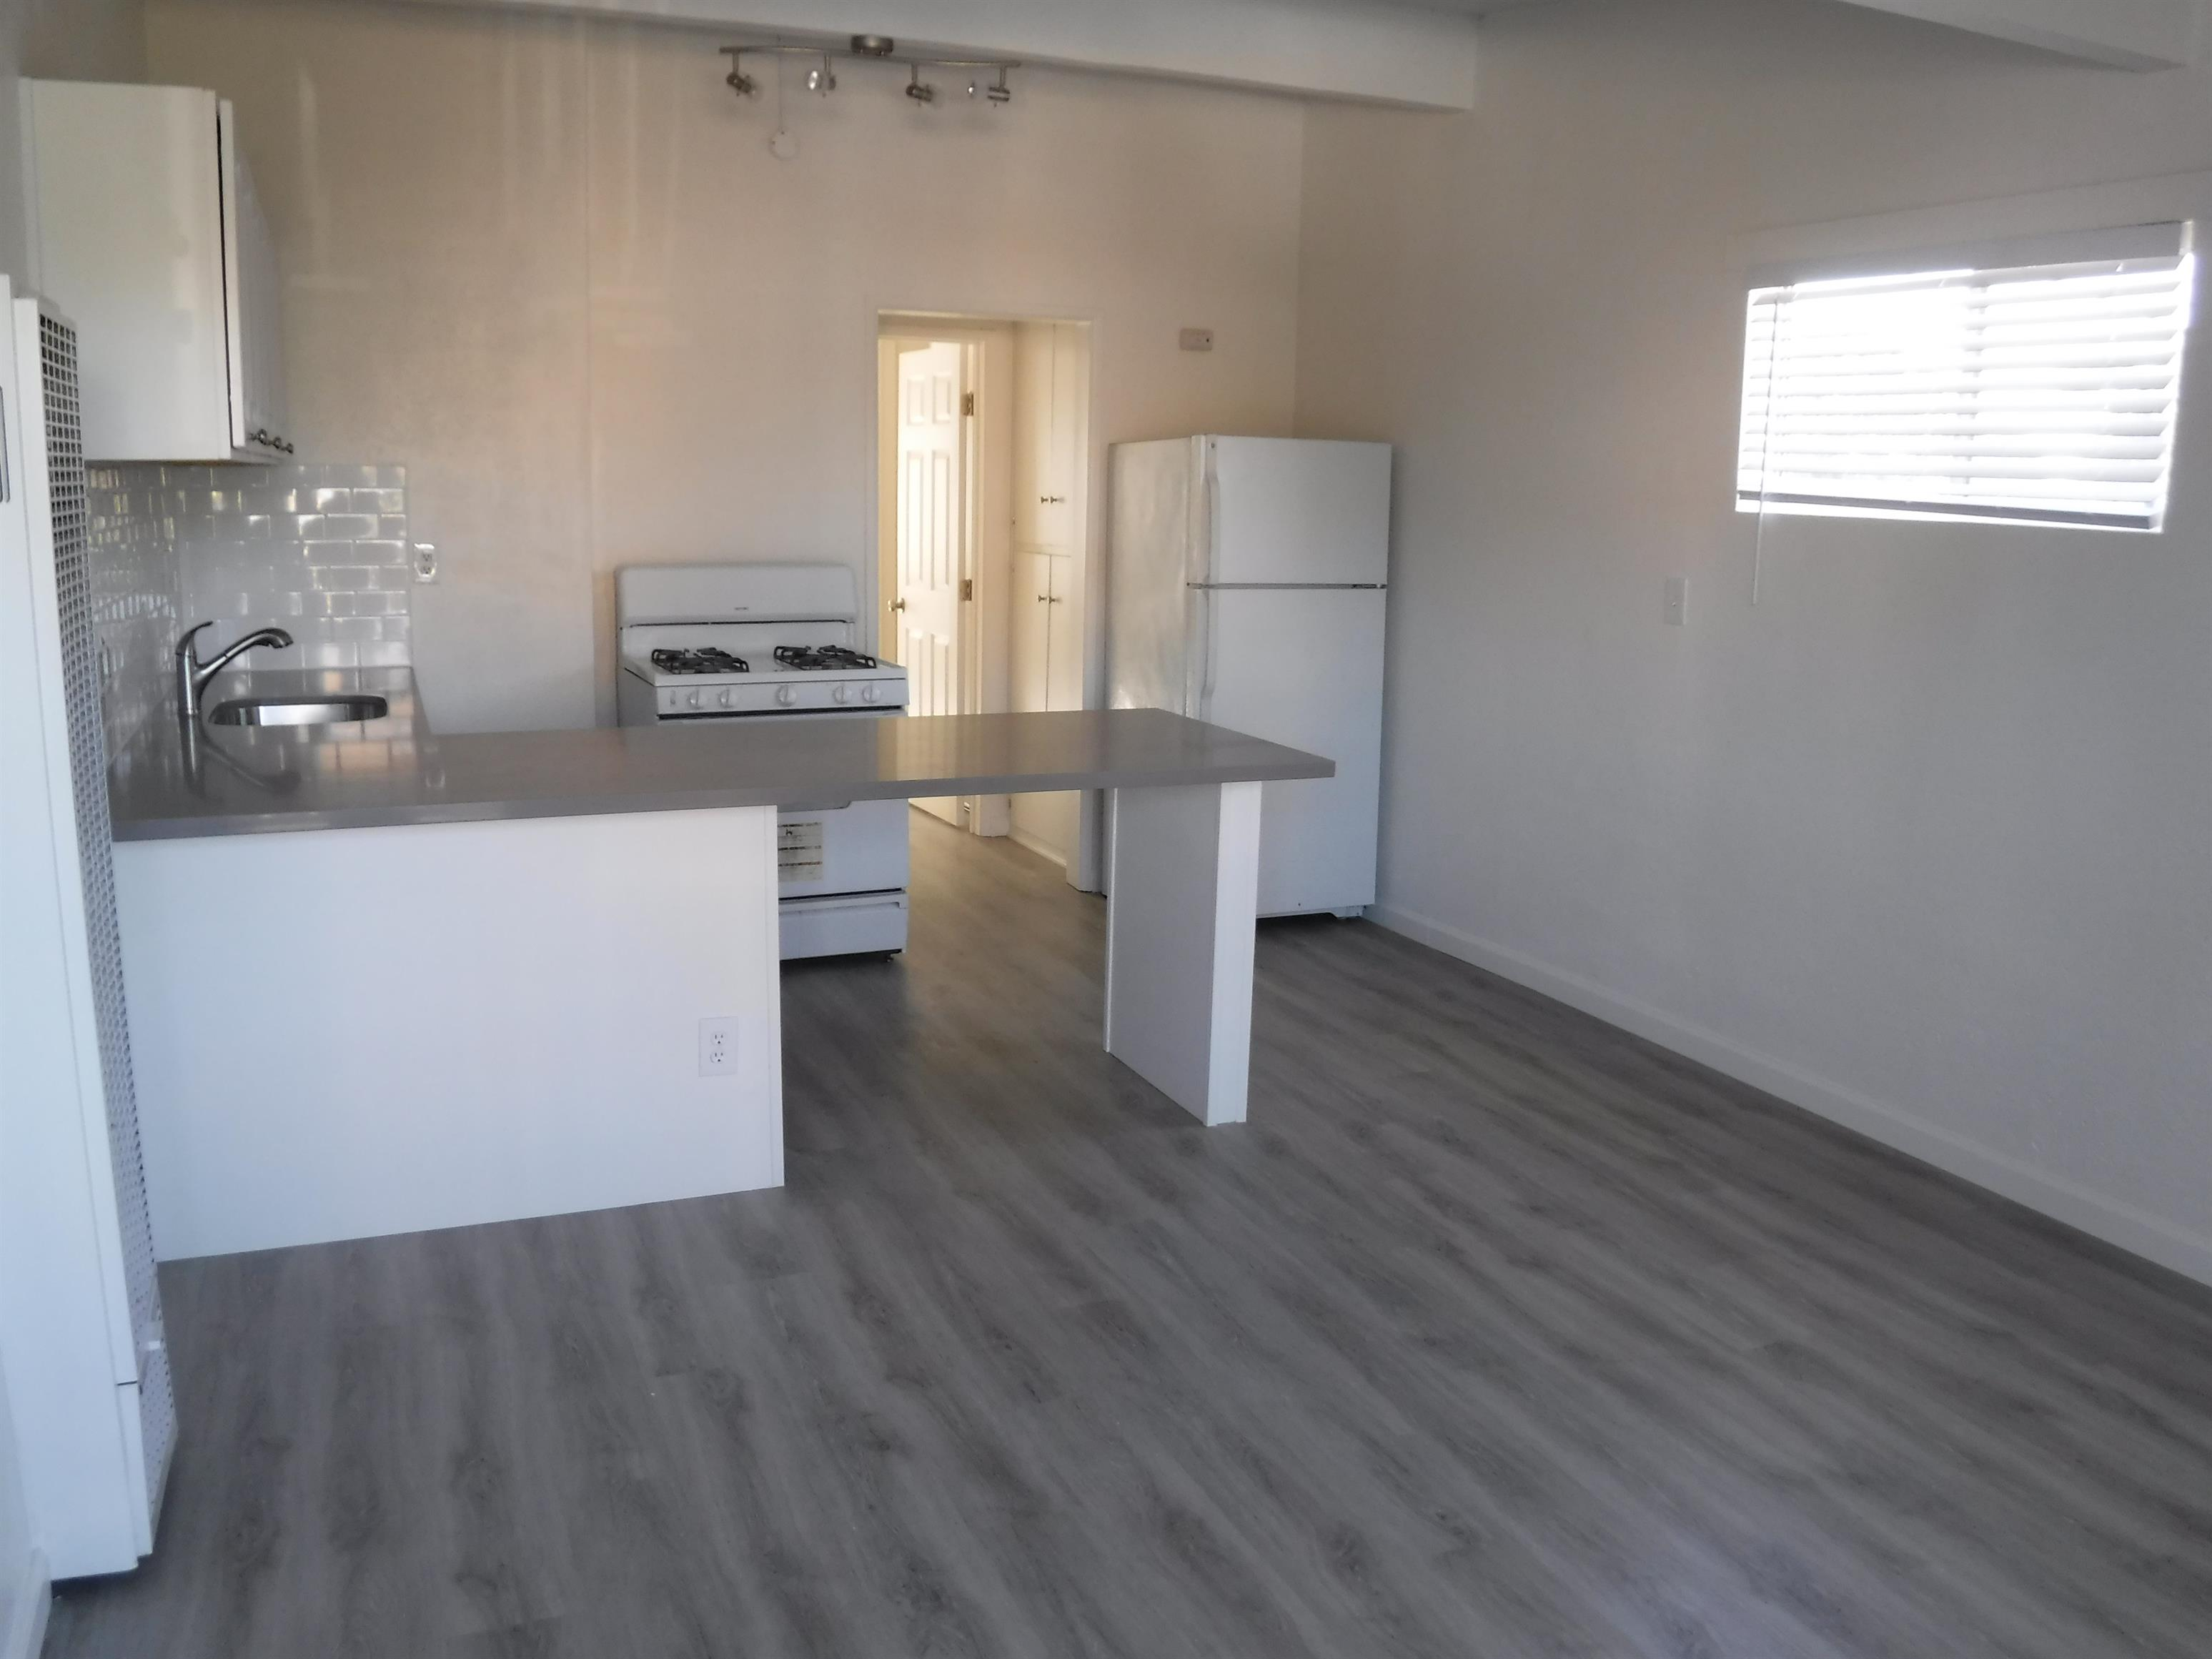 6691 Abrego Rd 18 image